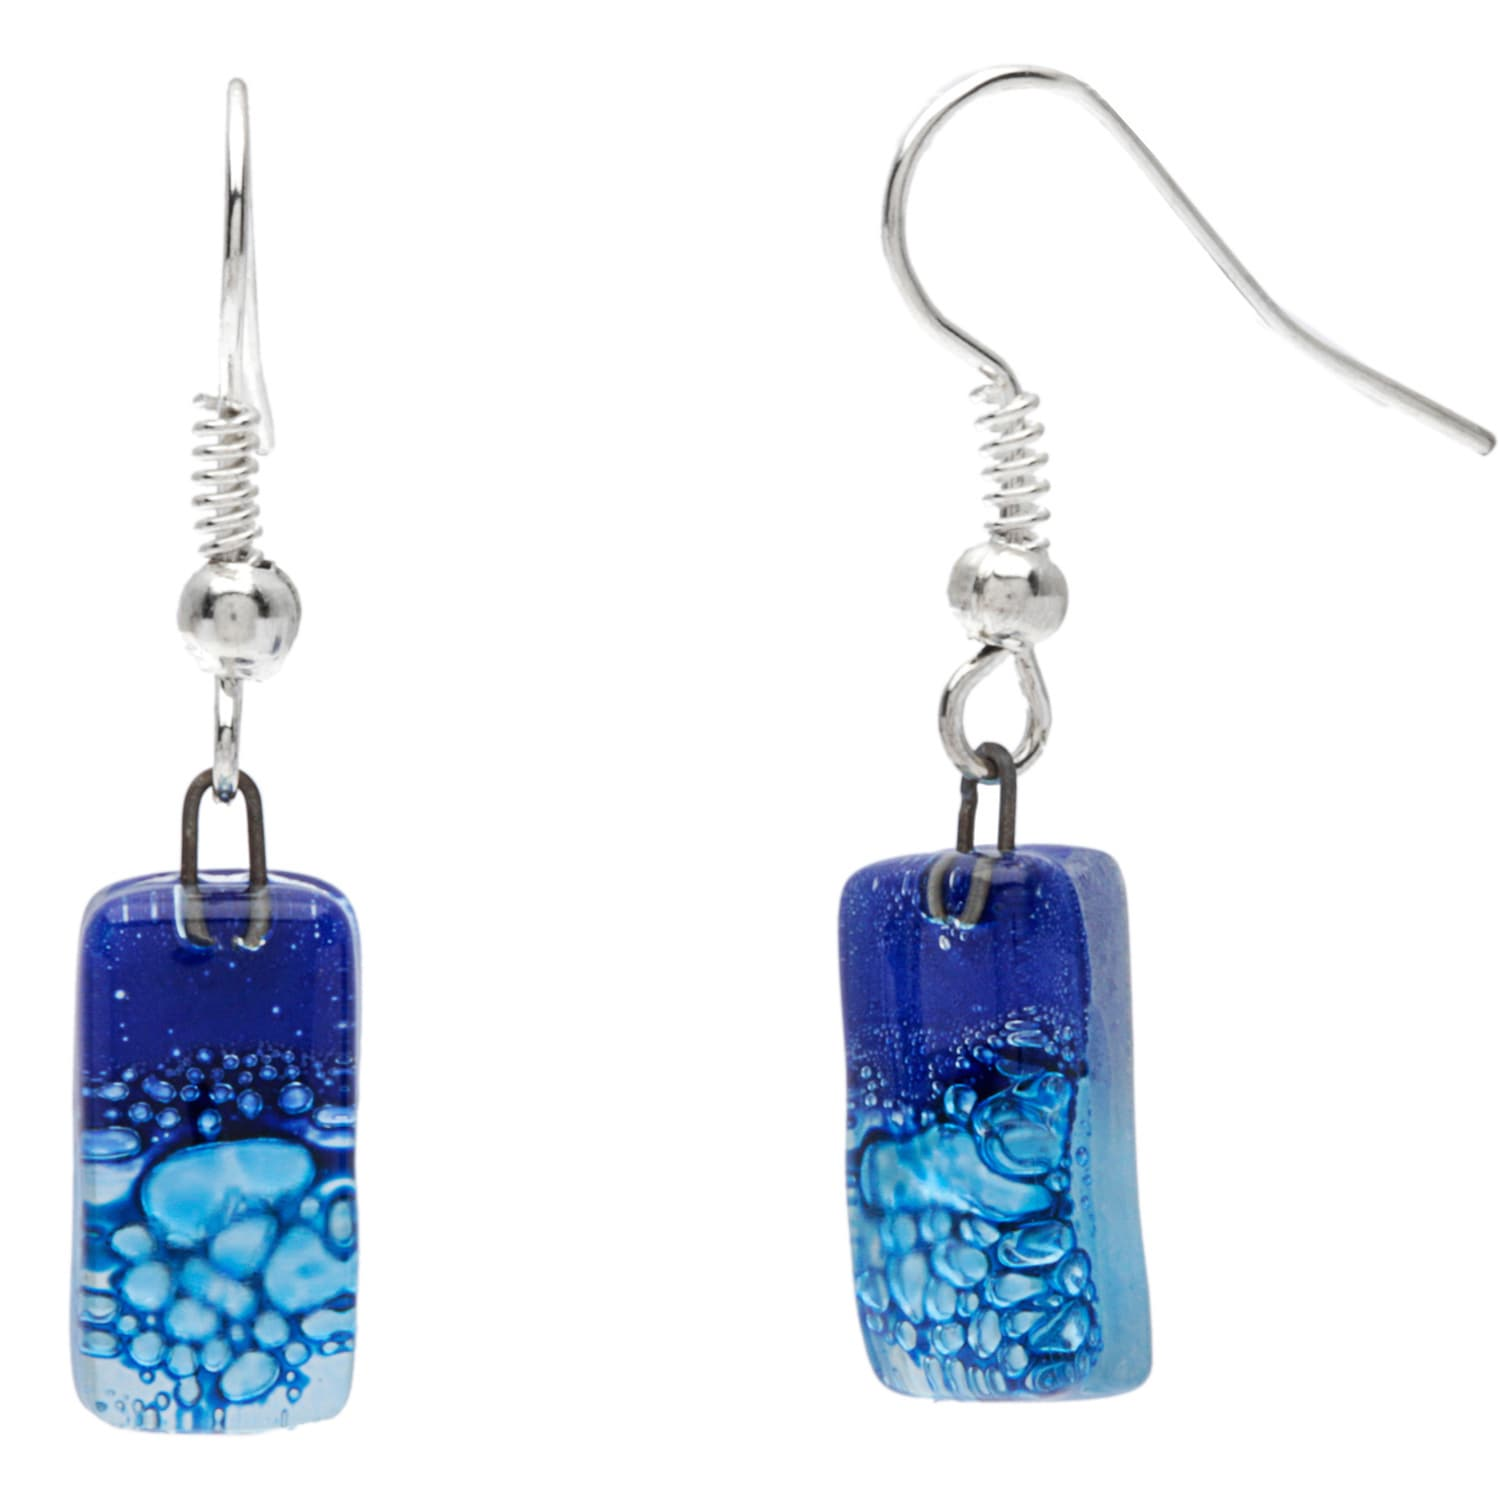 glass earrings search los silver and blue castillo mexican shop santa sterling